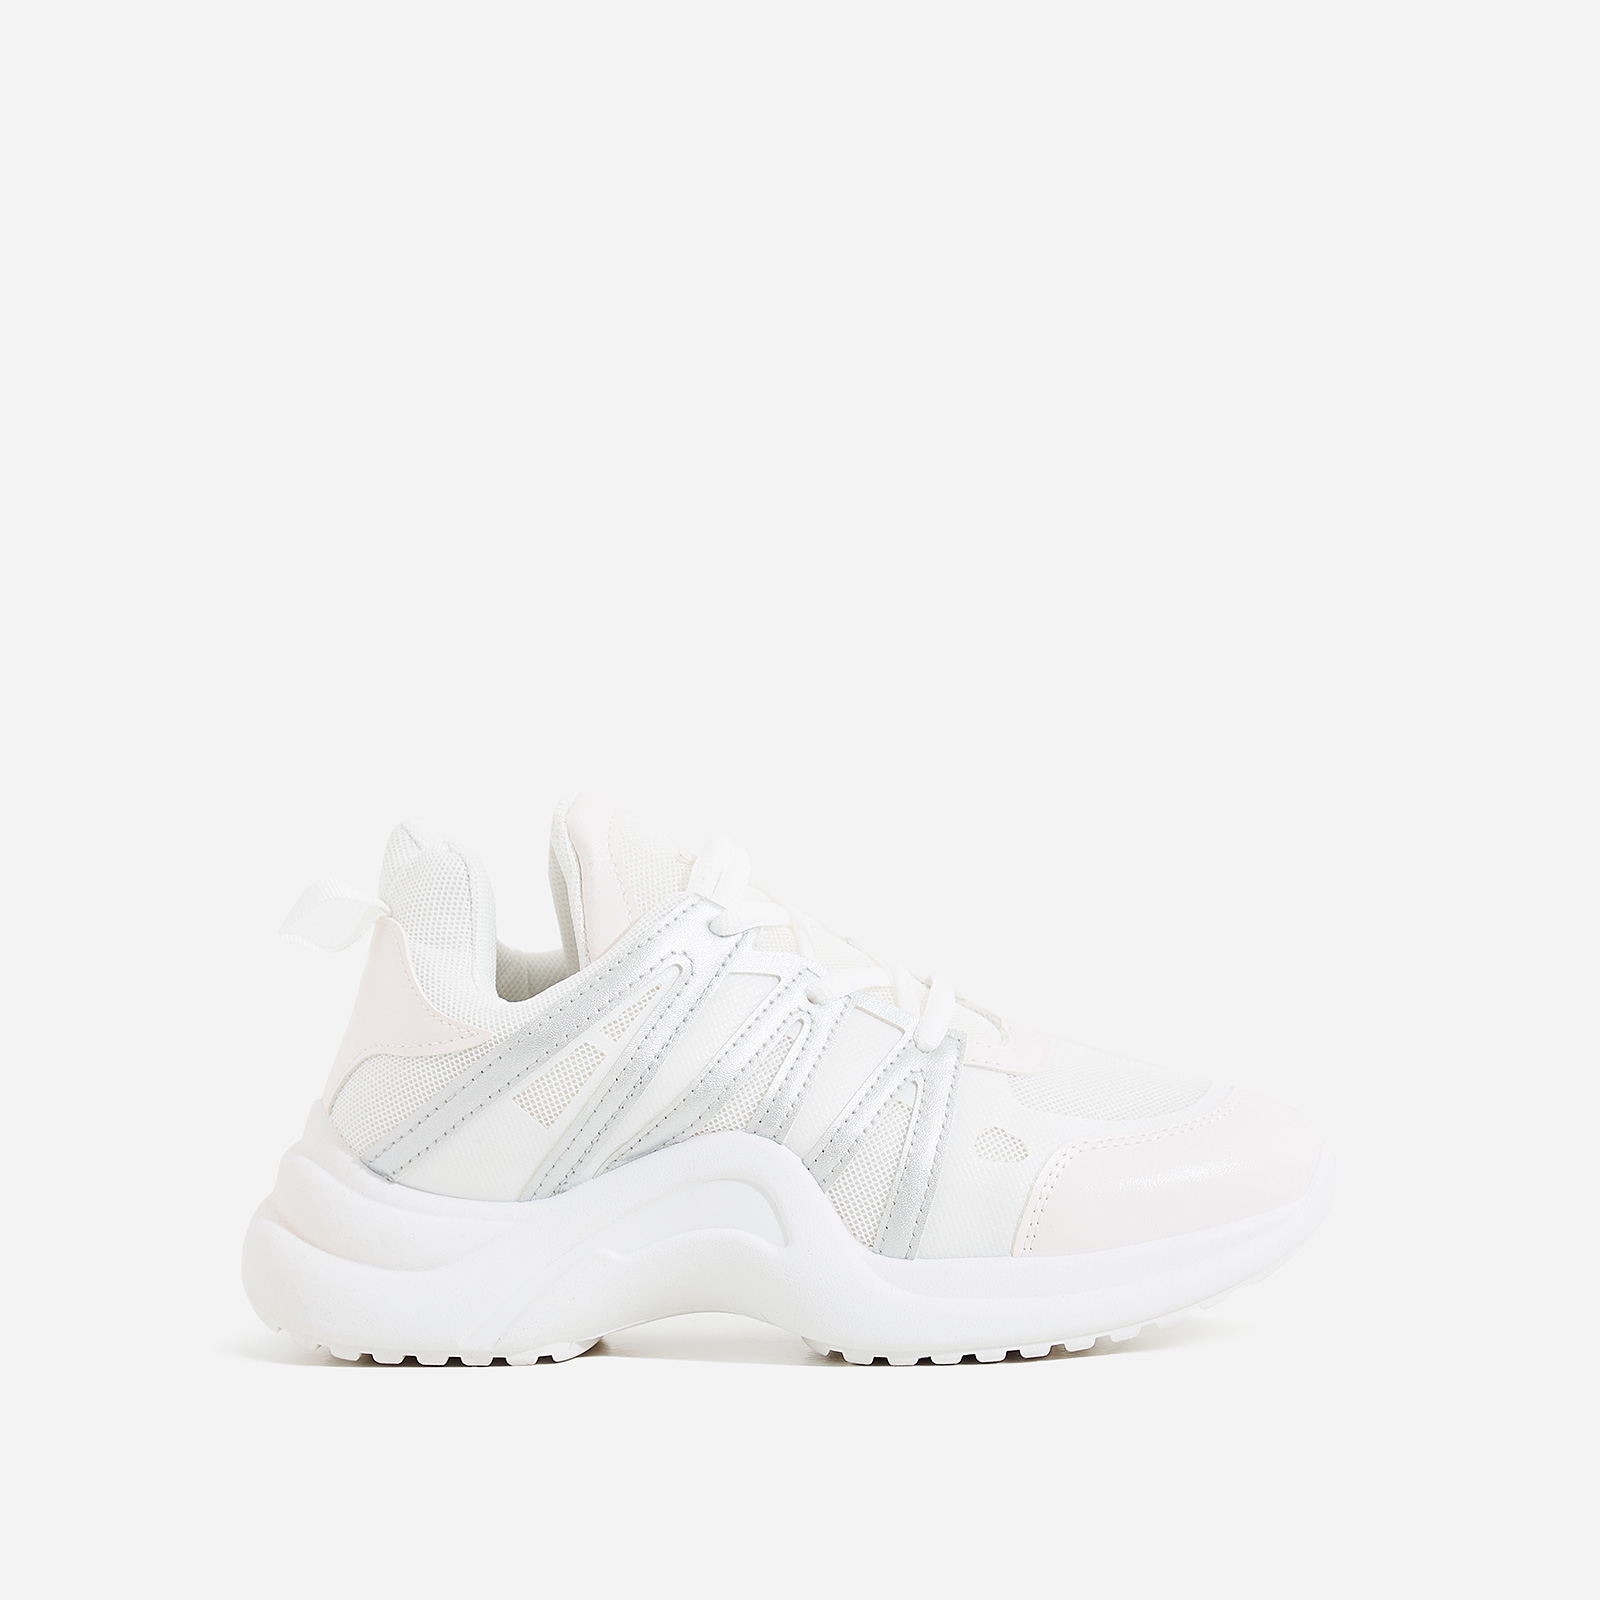 Nikki Wave Sole Trainer In White And Silver